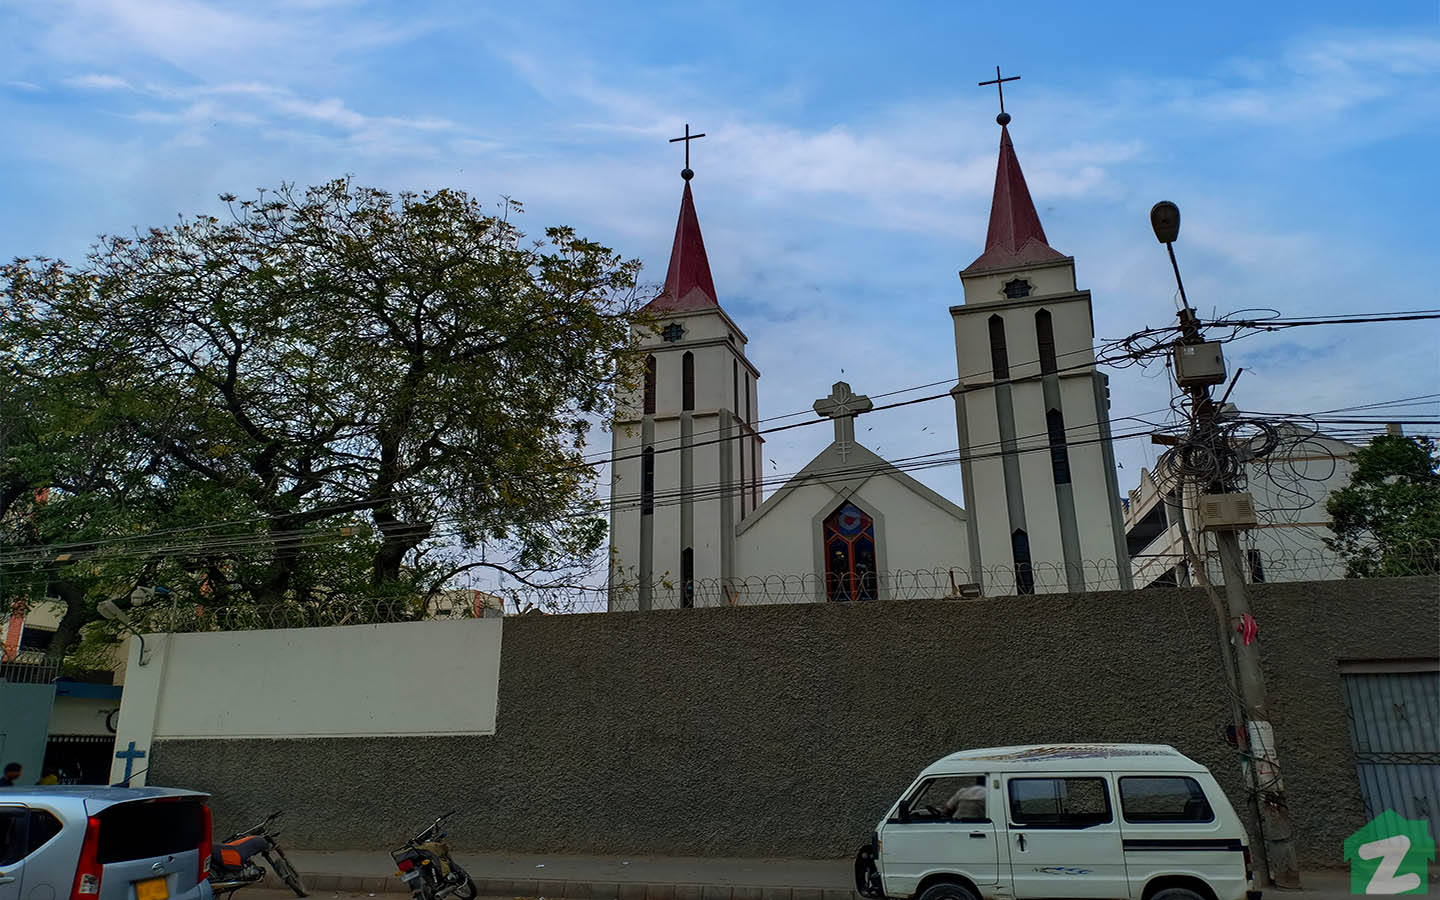 church - a place of worship for the Christian community in Clifton